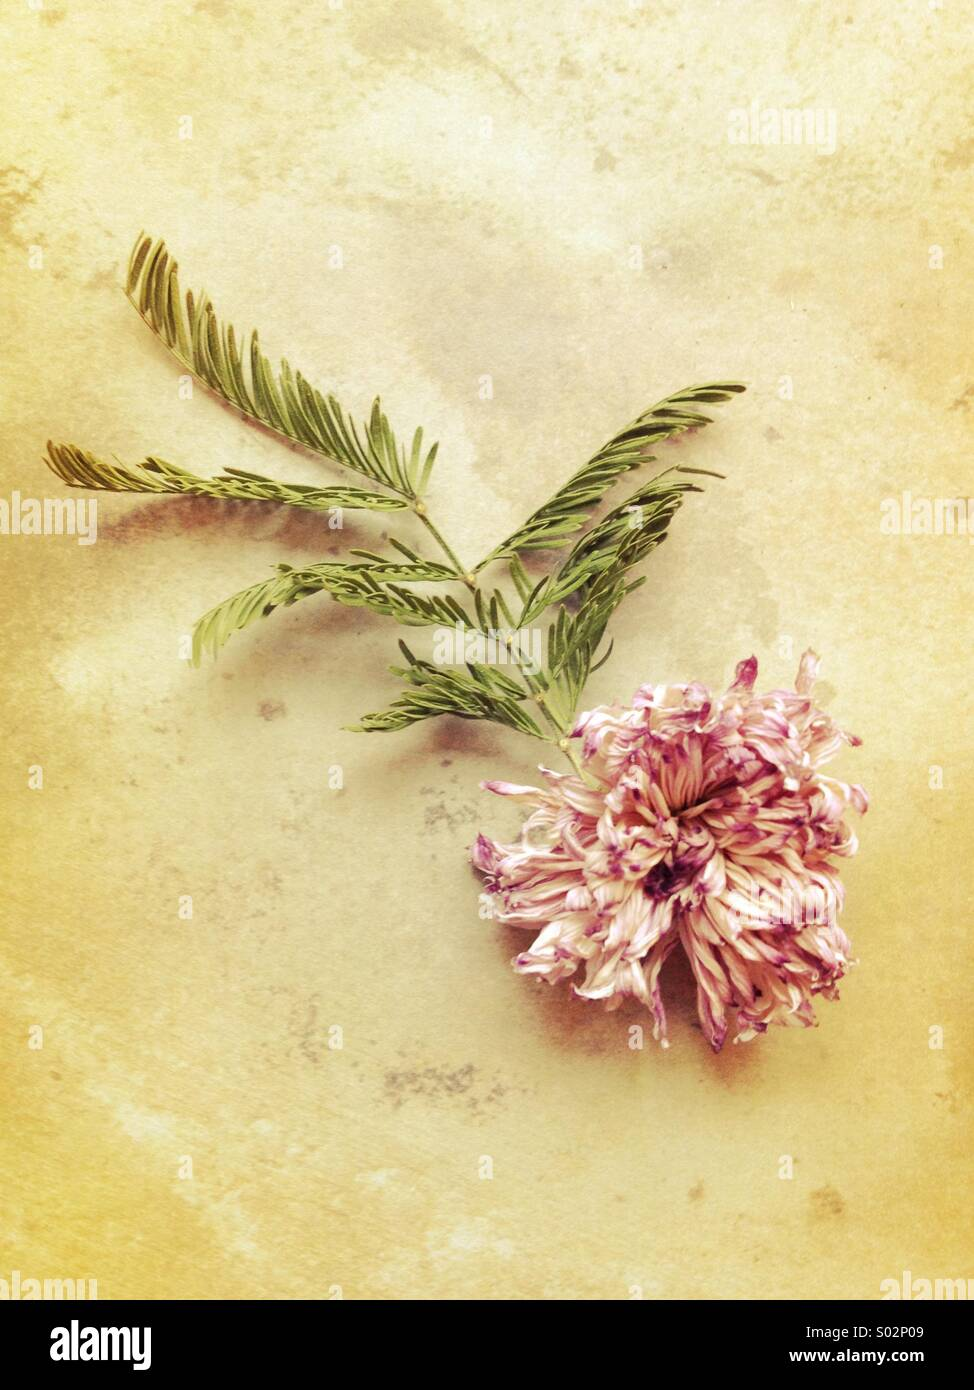 Faded flower - Stock Image